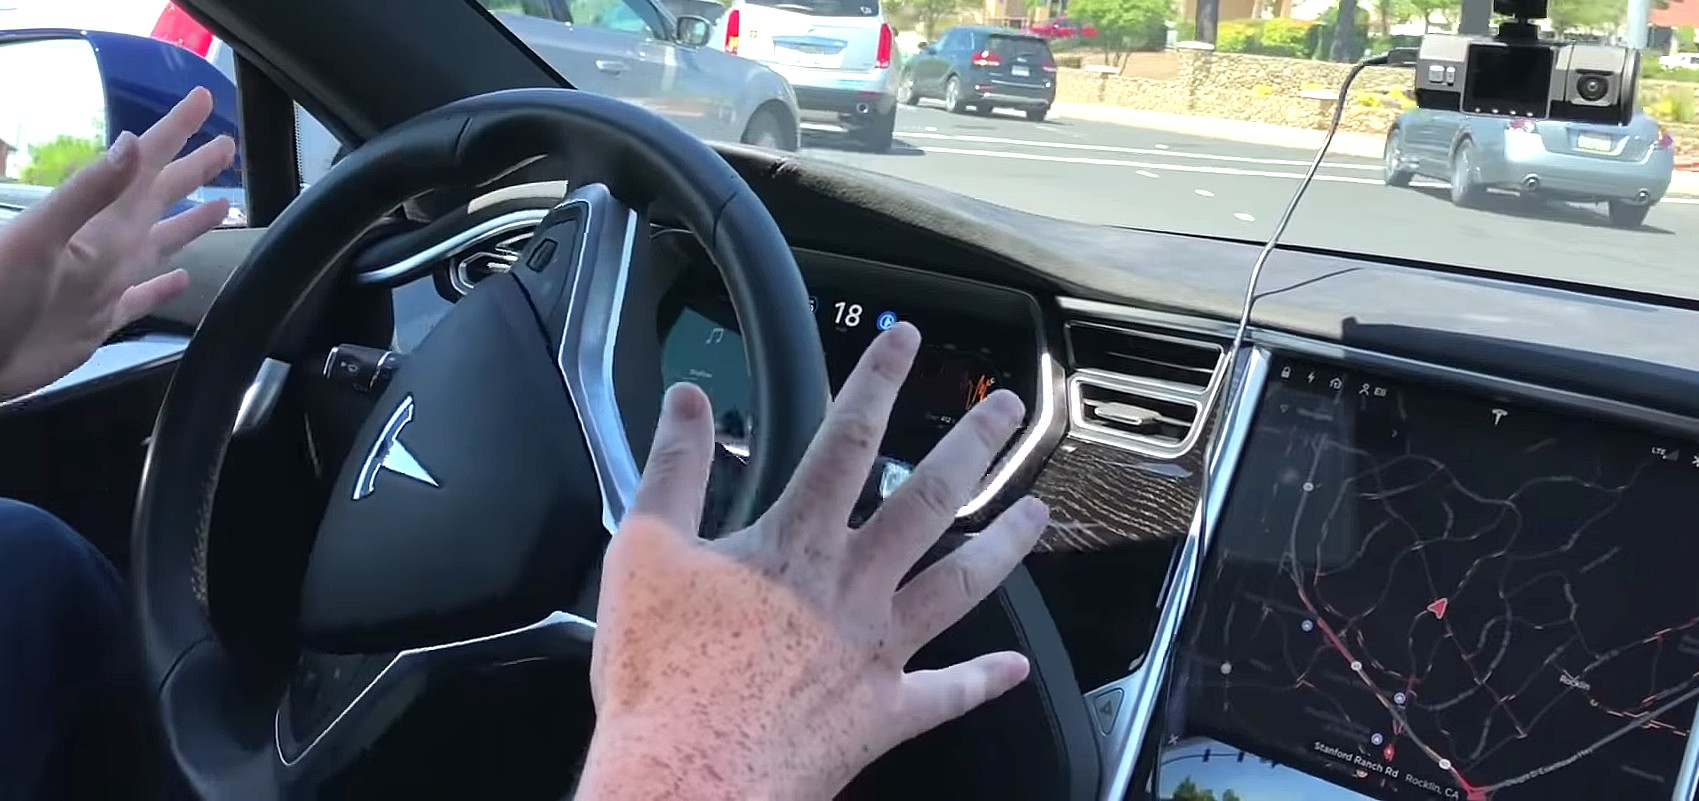 tesla autopilot europe restrictions